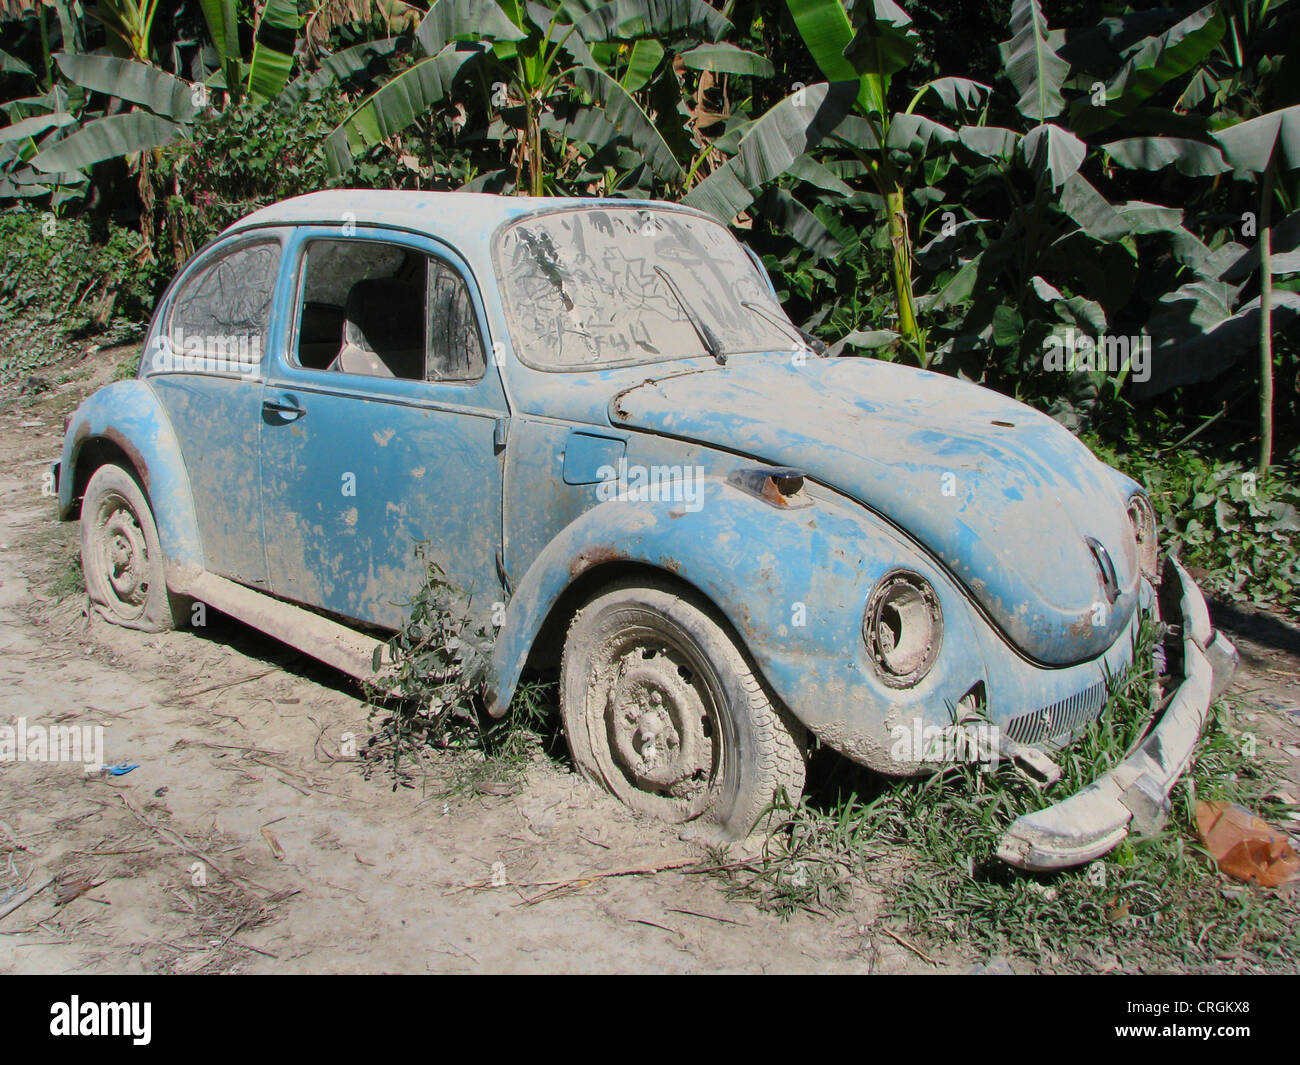 dusty wreck of a VW-Beetle rotting in the great outdoors, Haiti, Grande Anse, Jeremie - Stock Image